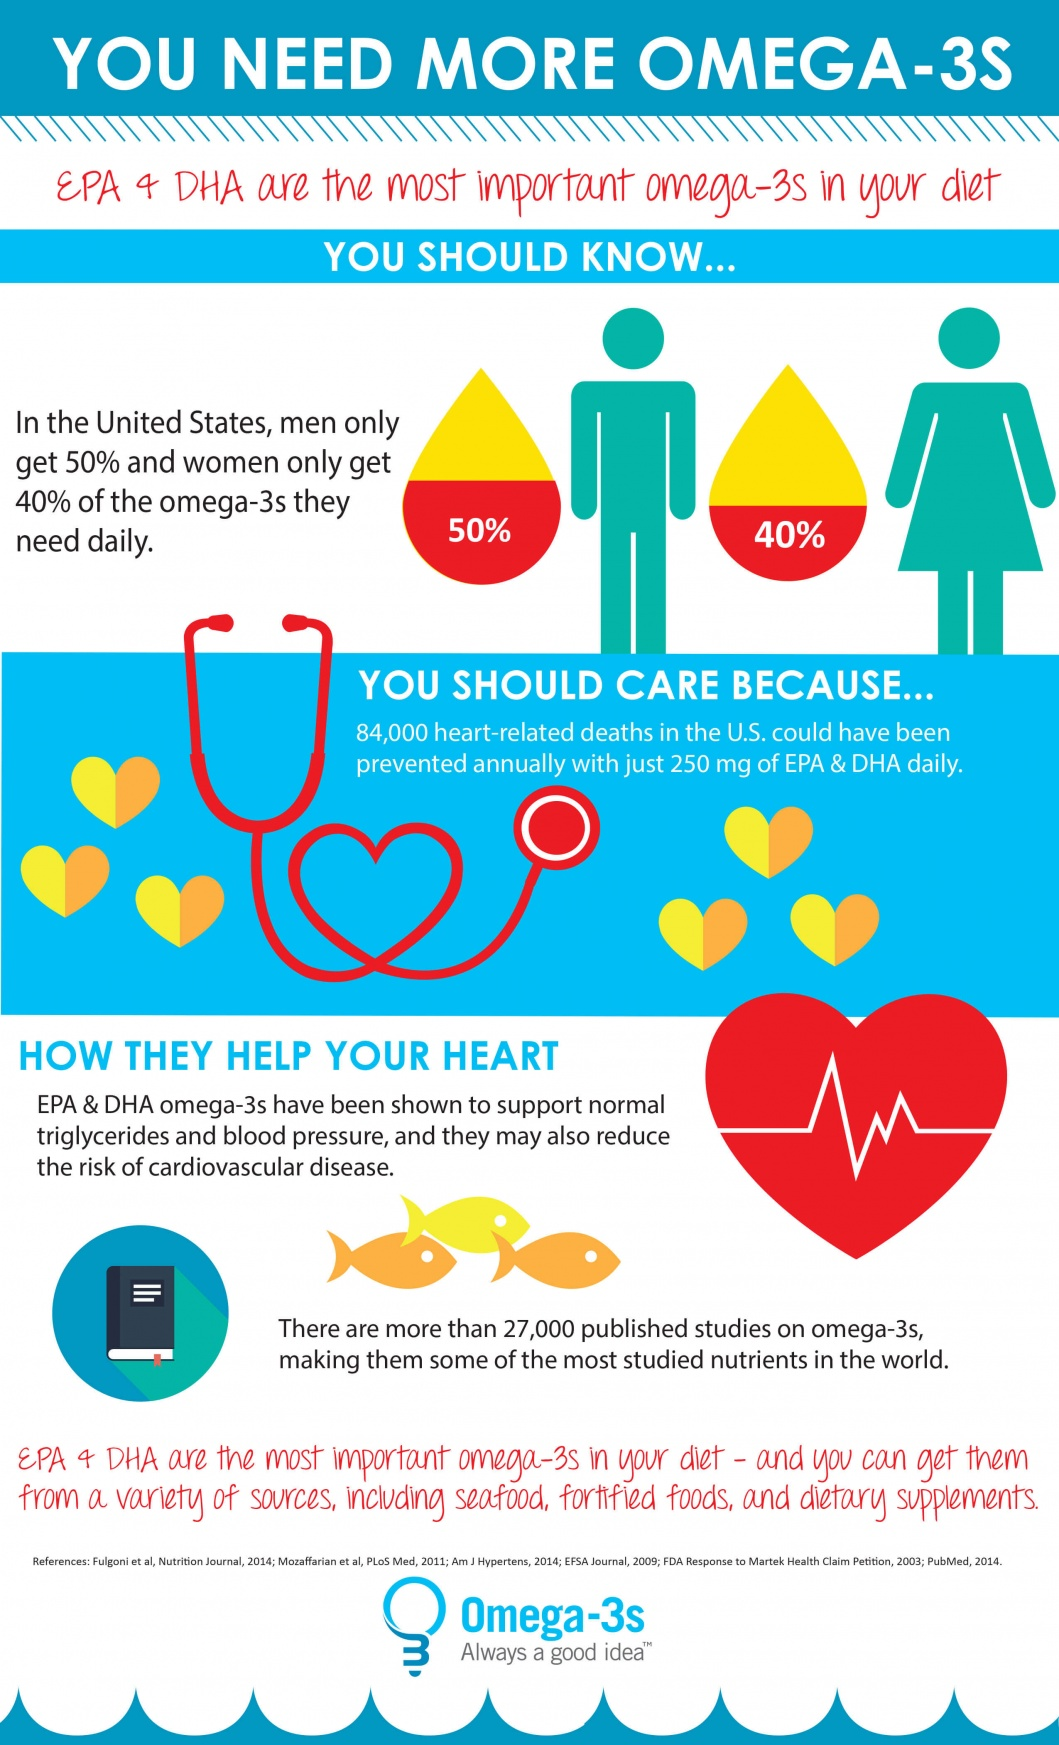 Omega-3s and Heart Health